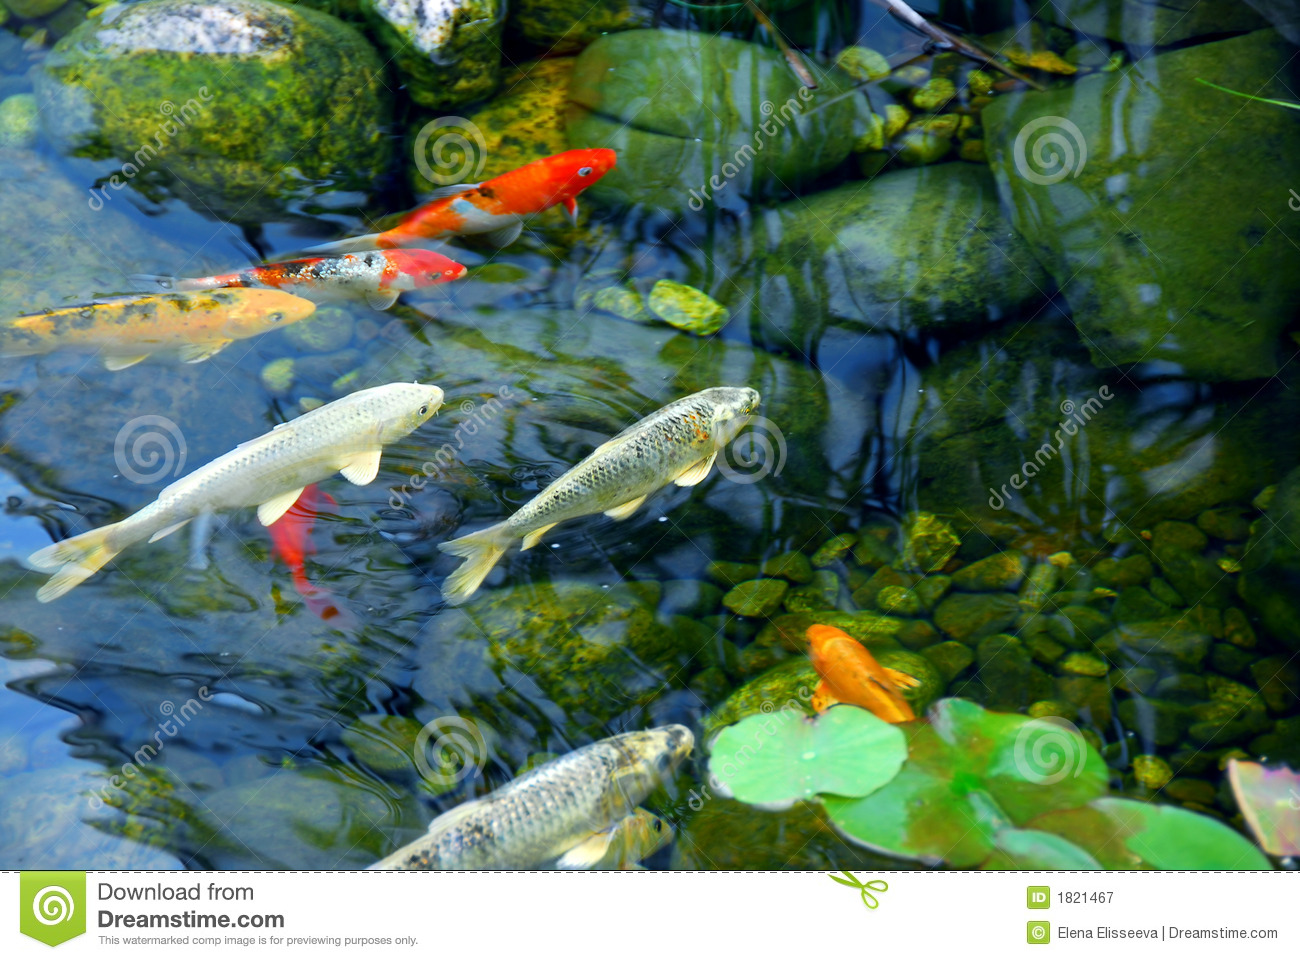 koi pond stock image